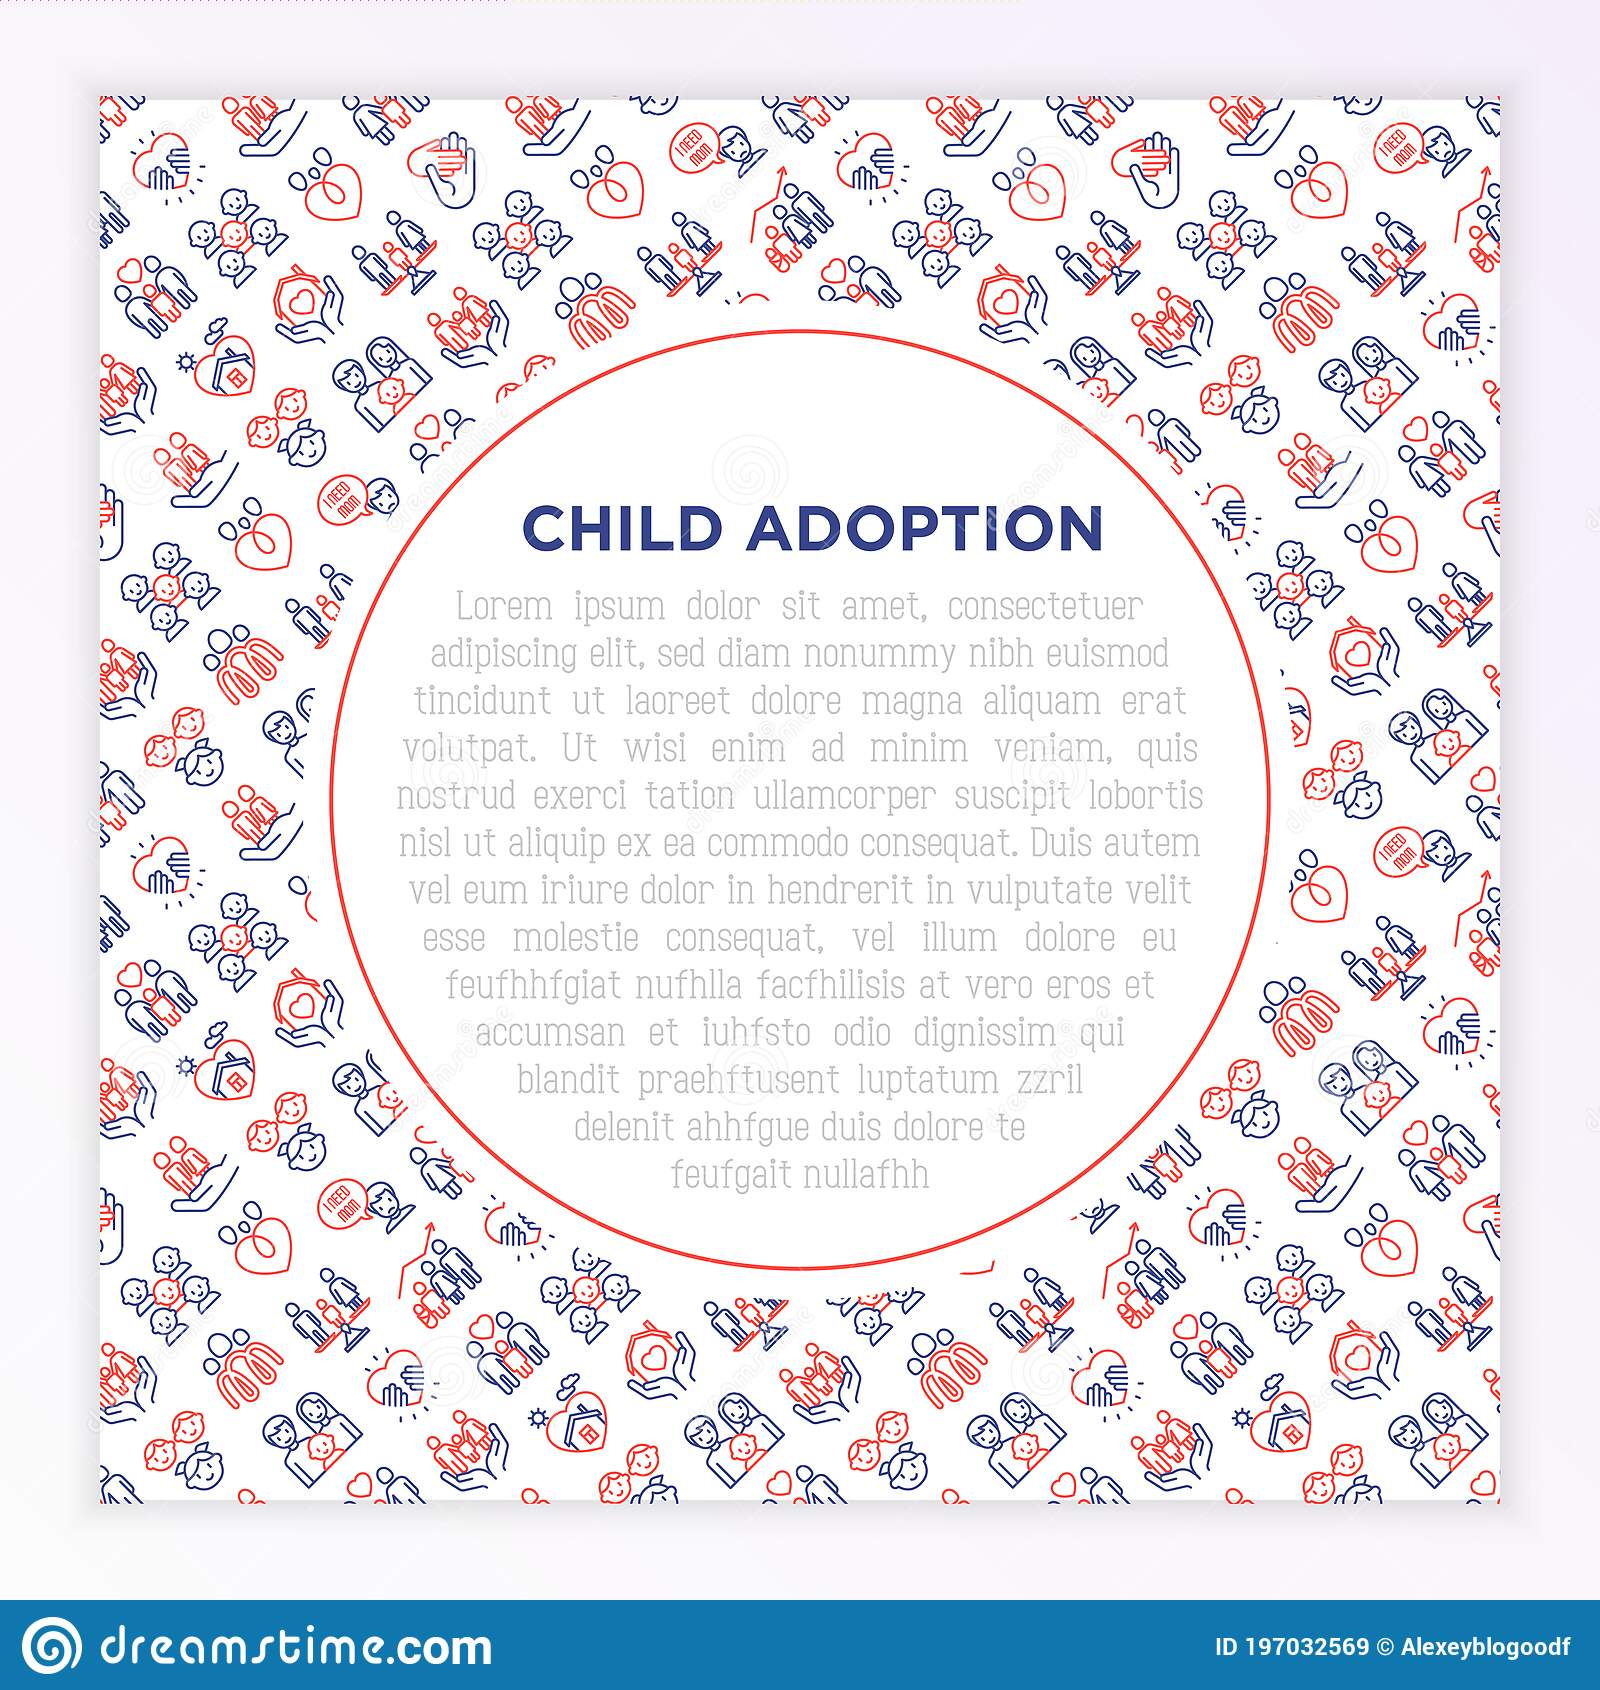 Child Adoption Concept With Thin Line Icons: Adoptive ...